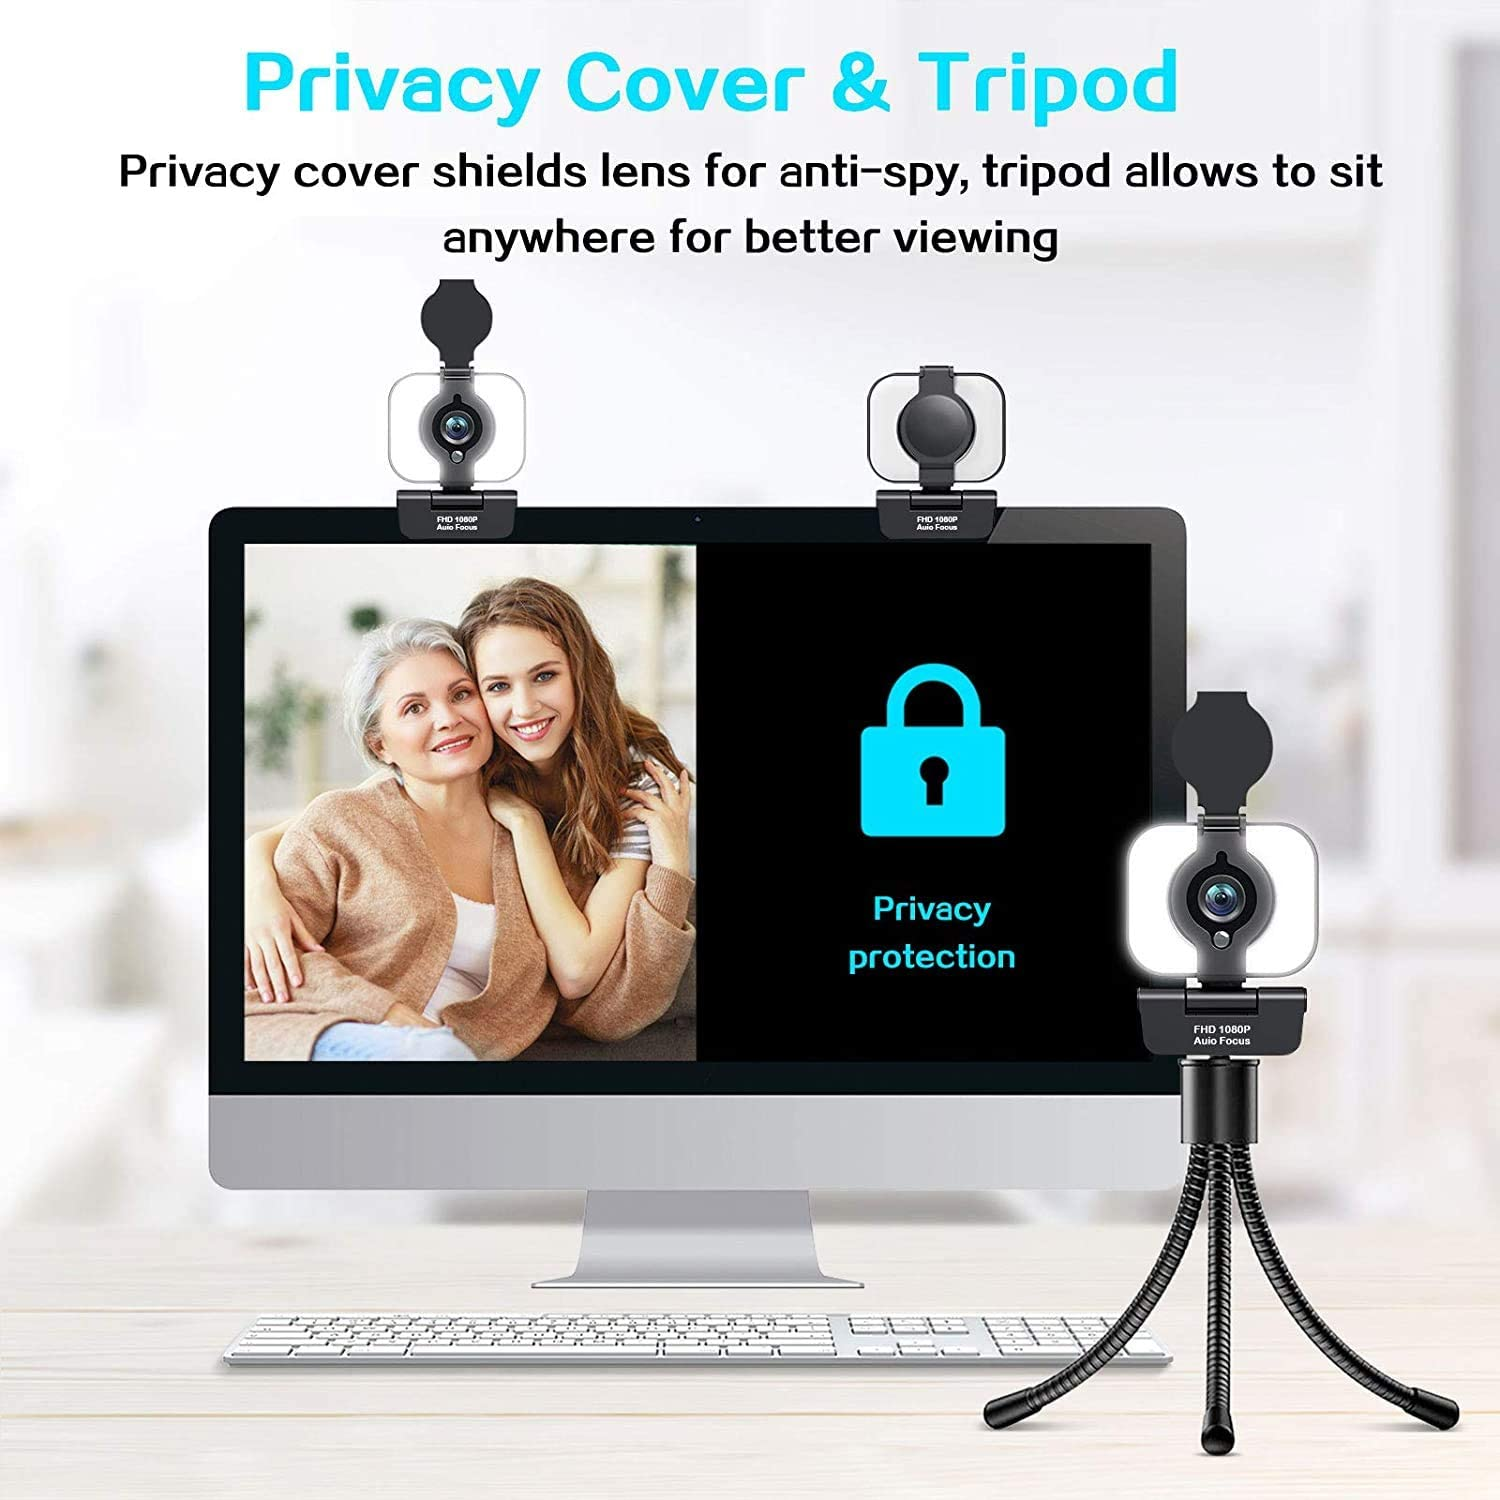 Built-in Stereo Microphone Video Calling for Laptop,Mac,Plug and Play Webcam for YouTube,Skype,Facetime,Zoom DGVDO Streaming Webcam with Tripod 1080P Web camera with Ring Light USB Web Camera with Privacy Cover Adjustable Fill Light Webcam